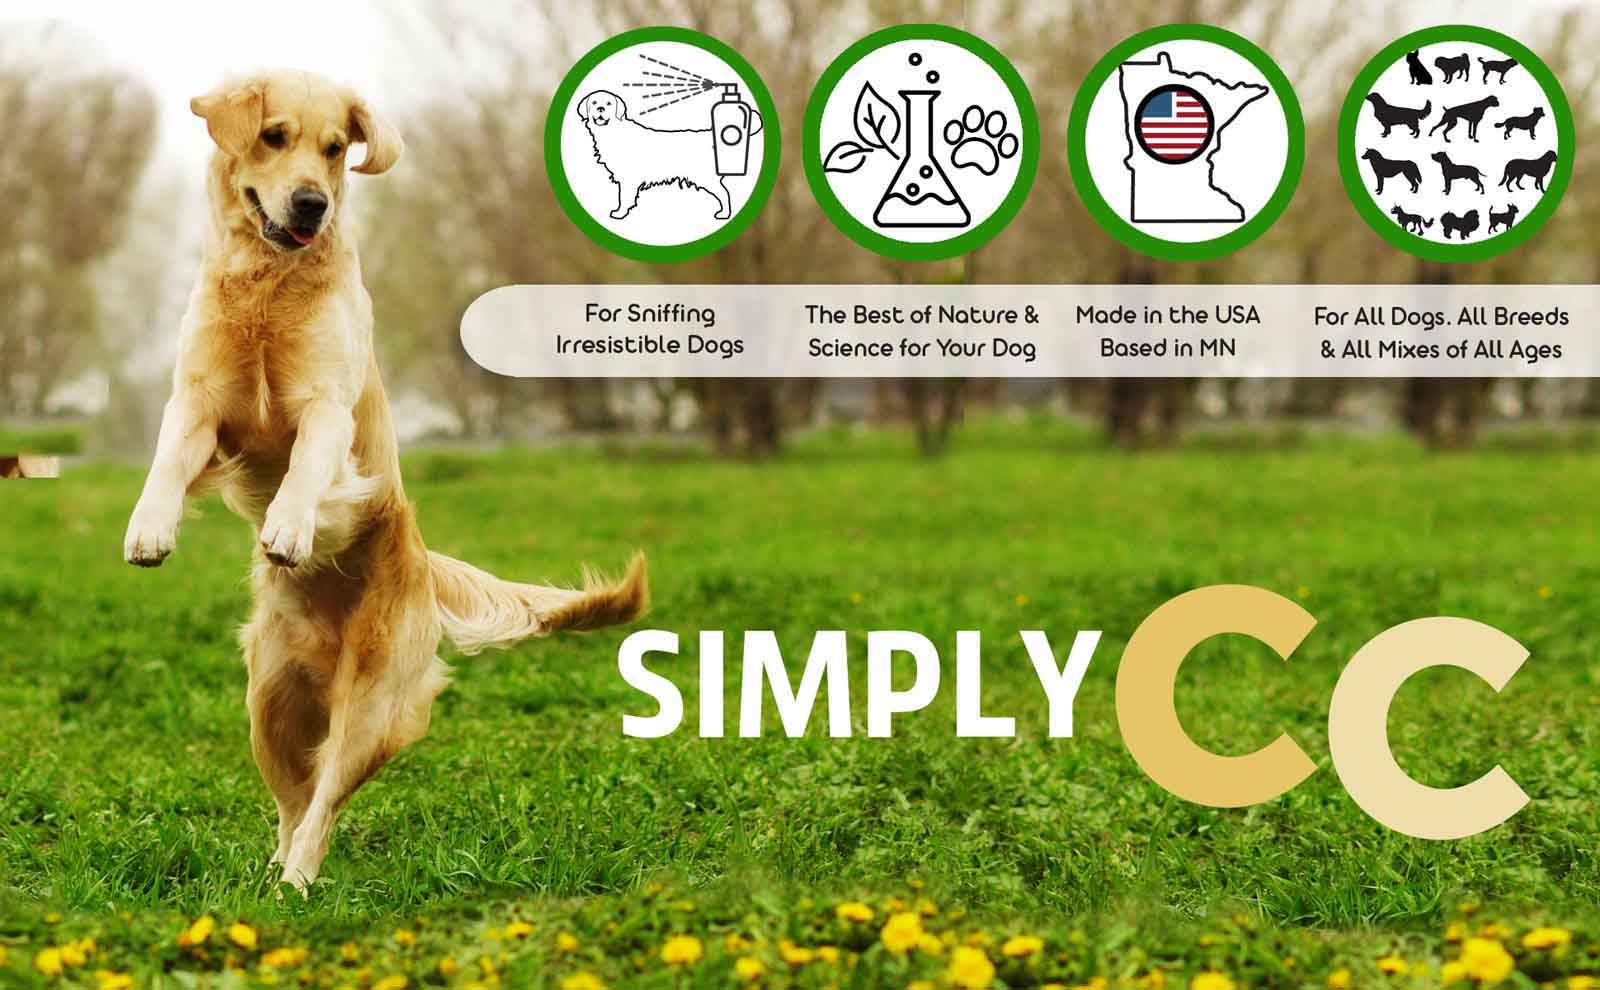 simply cc dog cologne